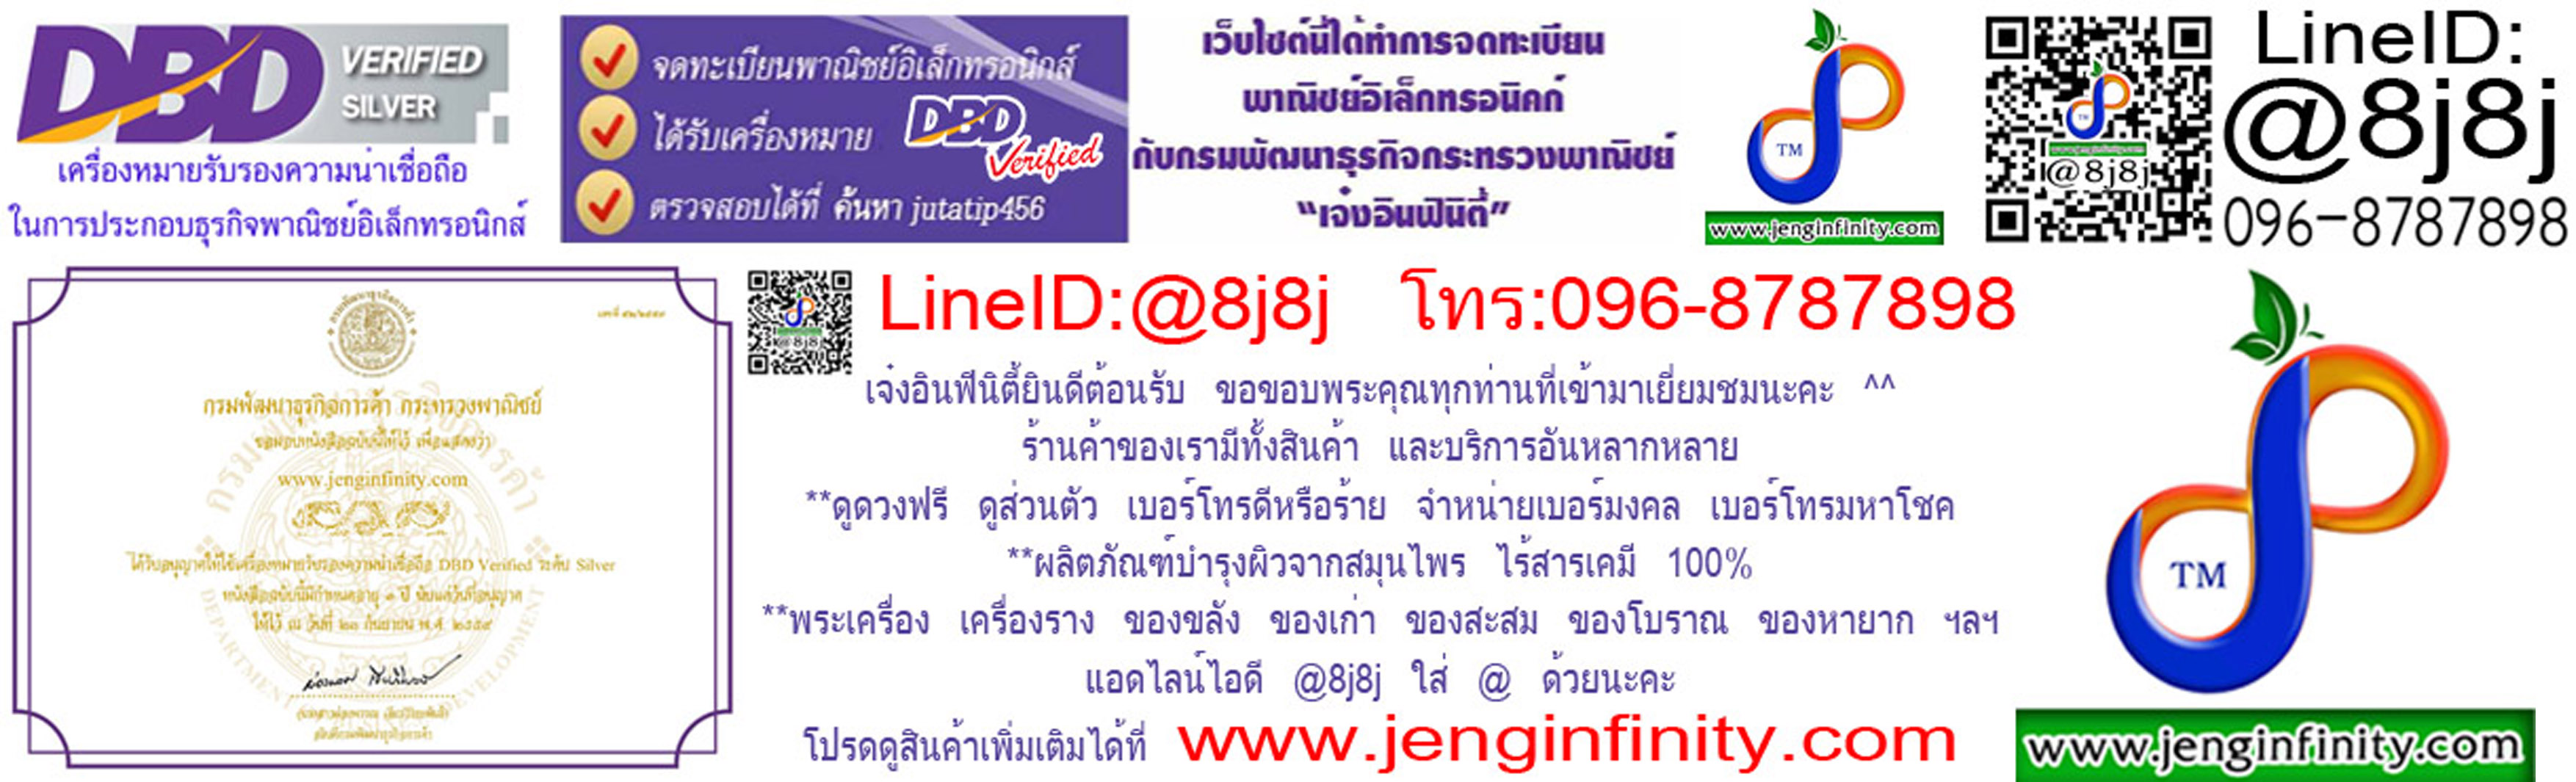 8j เจ๋ง อินฟินิตี้ jenginfinity